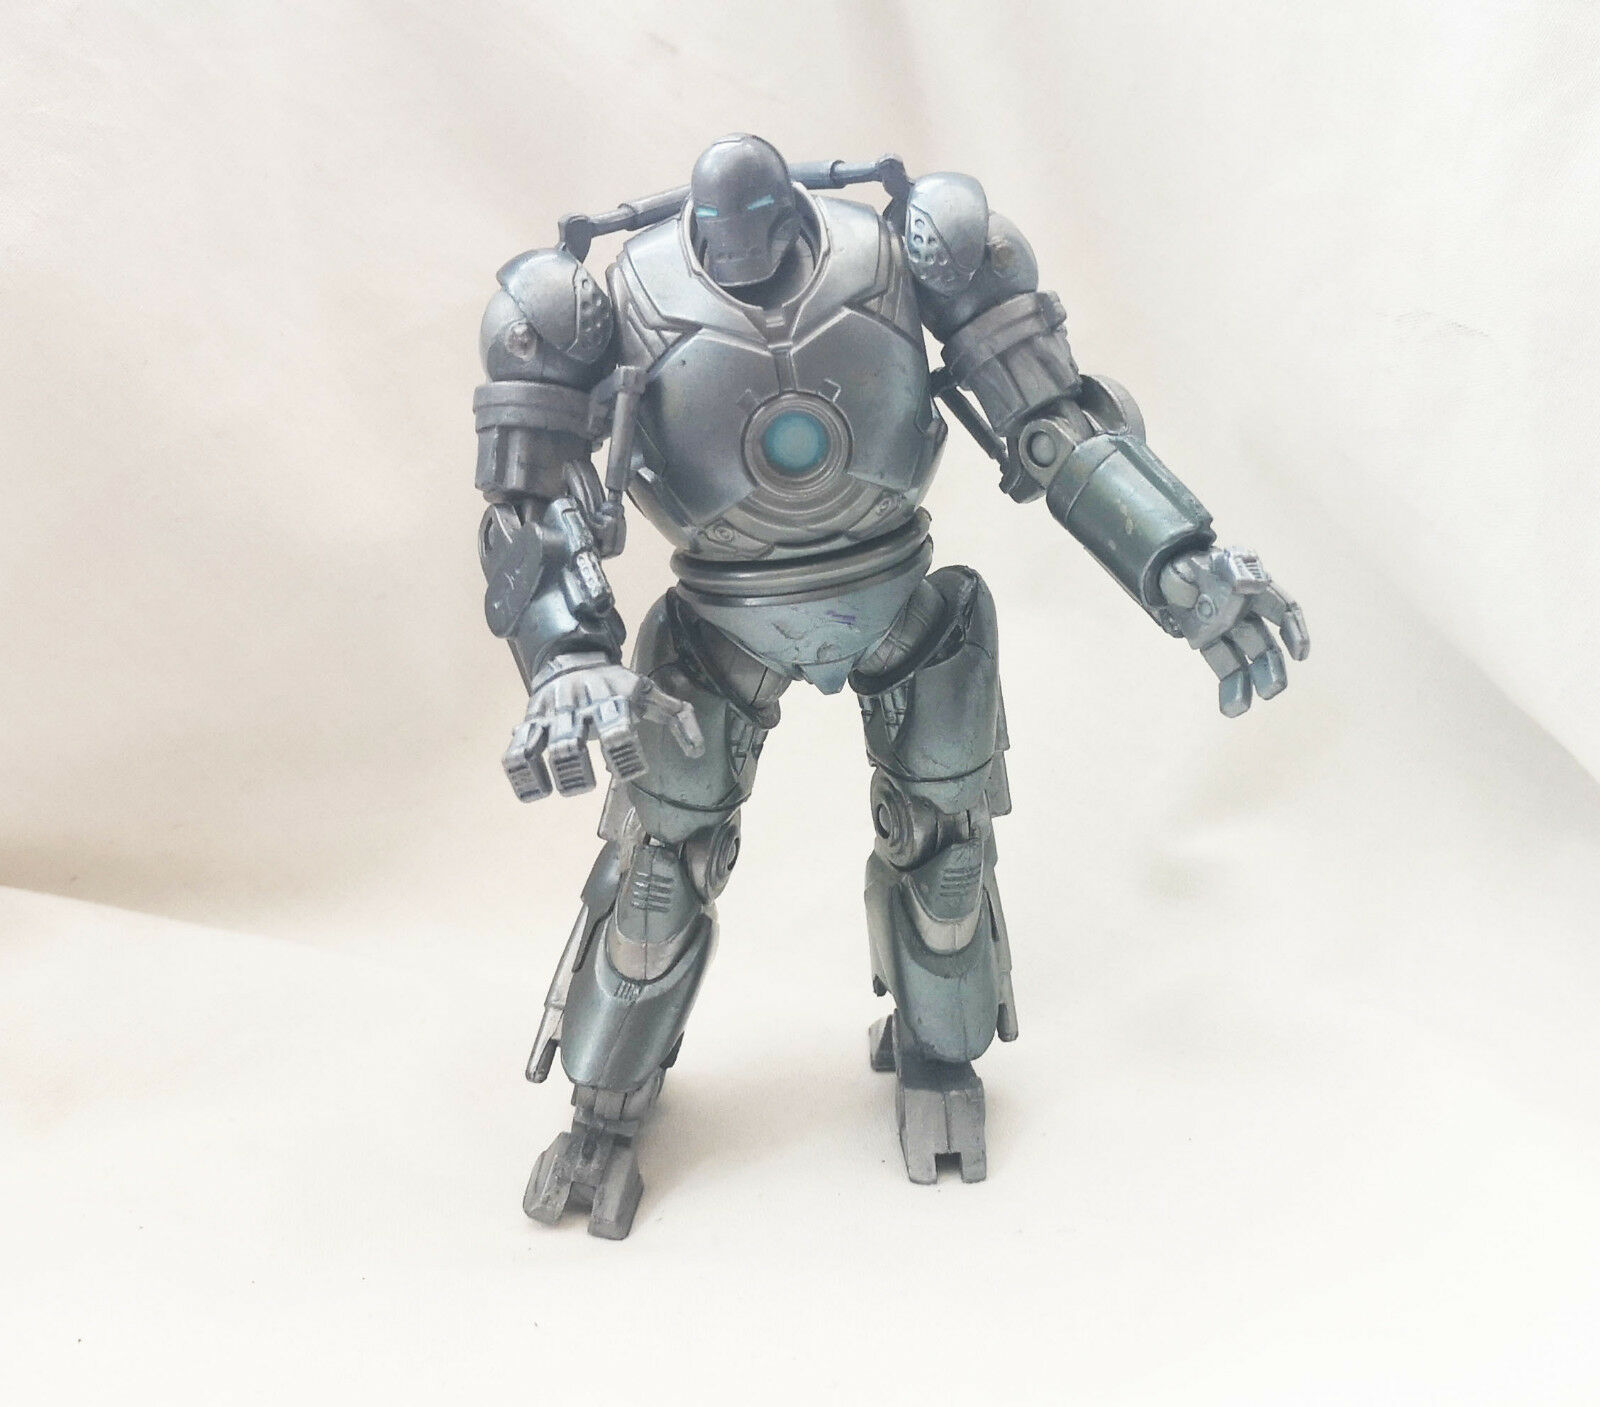 Iron Monger Marvel Universe Iron man Movie Action Action Action figure 3.75 inch scale toy cbd4a6